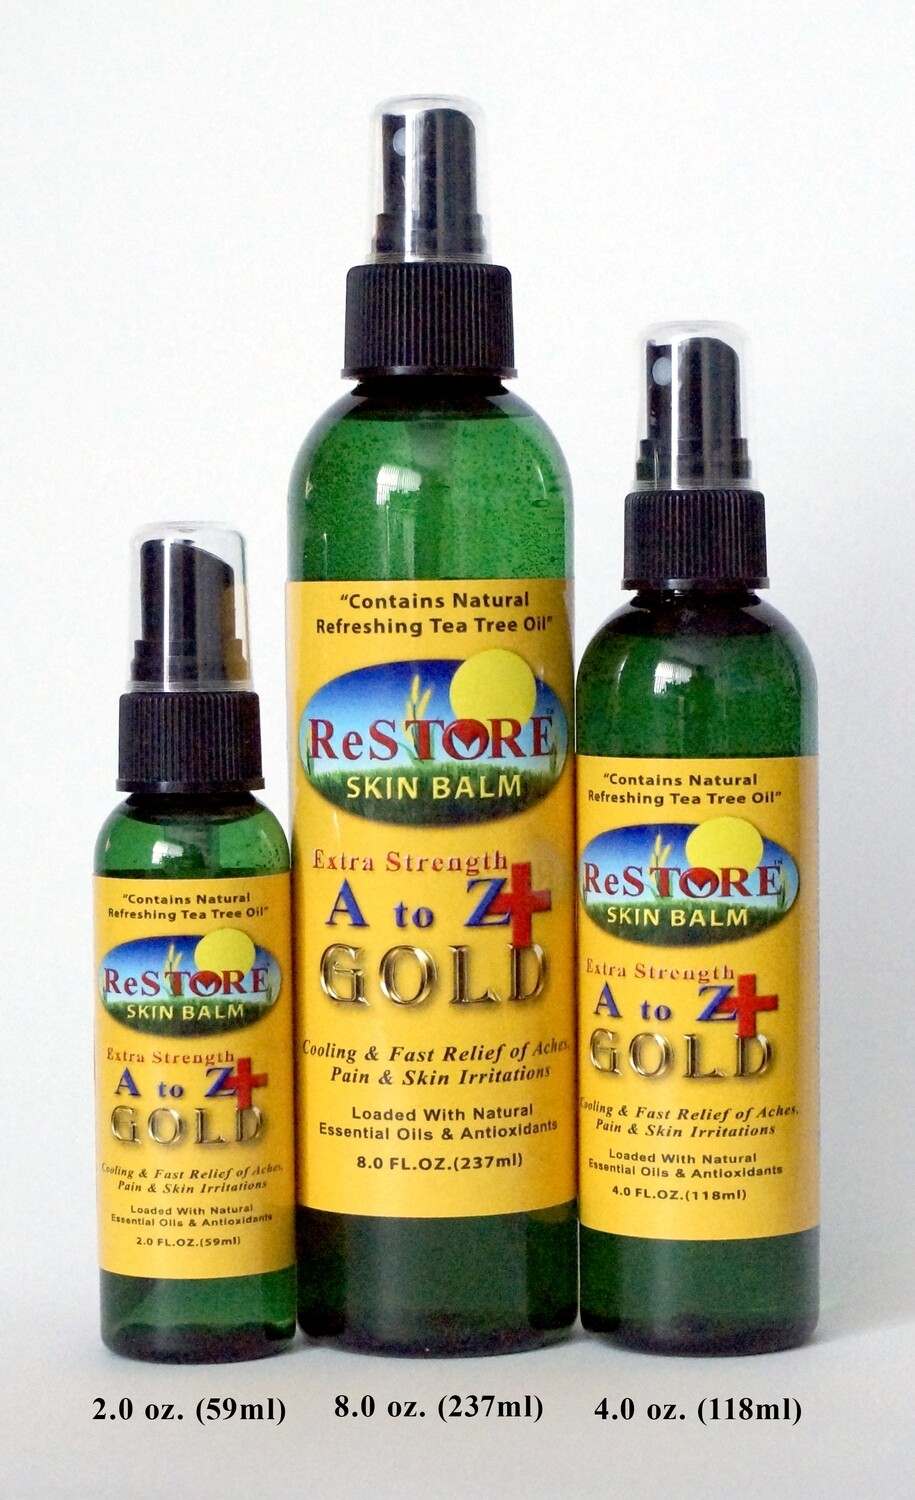 ReSTORE A-to-Z Gold Skin Balm